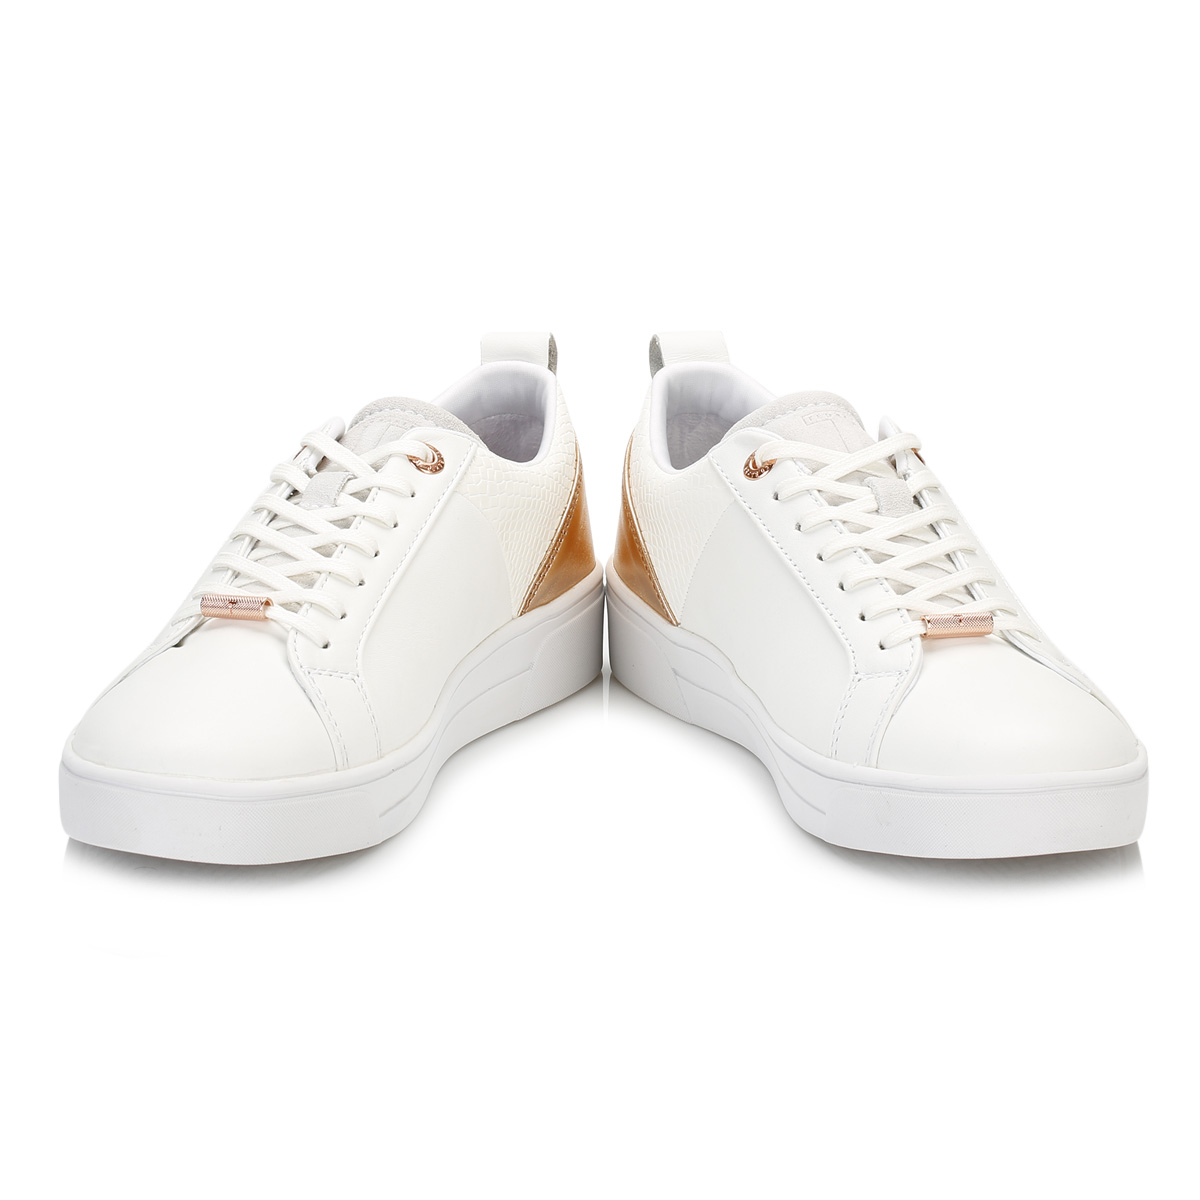 f8df9c1307938b Ted Baker Womens Trainers White Rose Gold Kulei Stylish Shoes Casual Flats